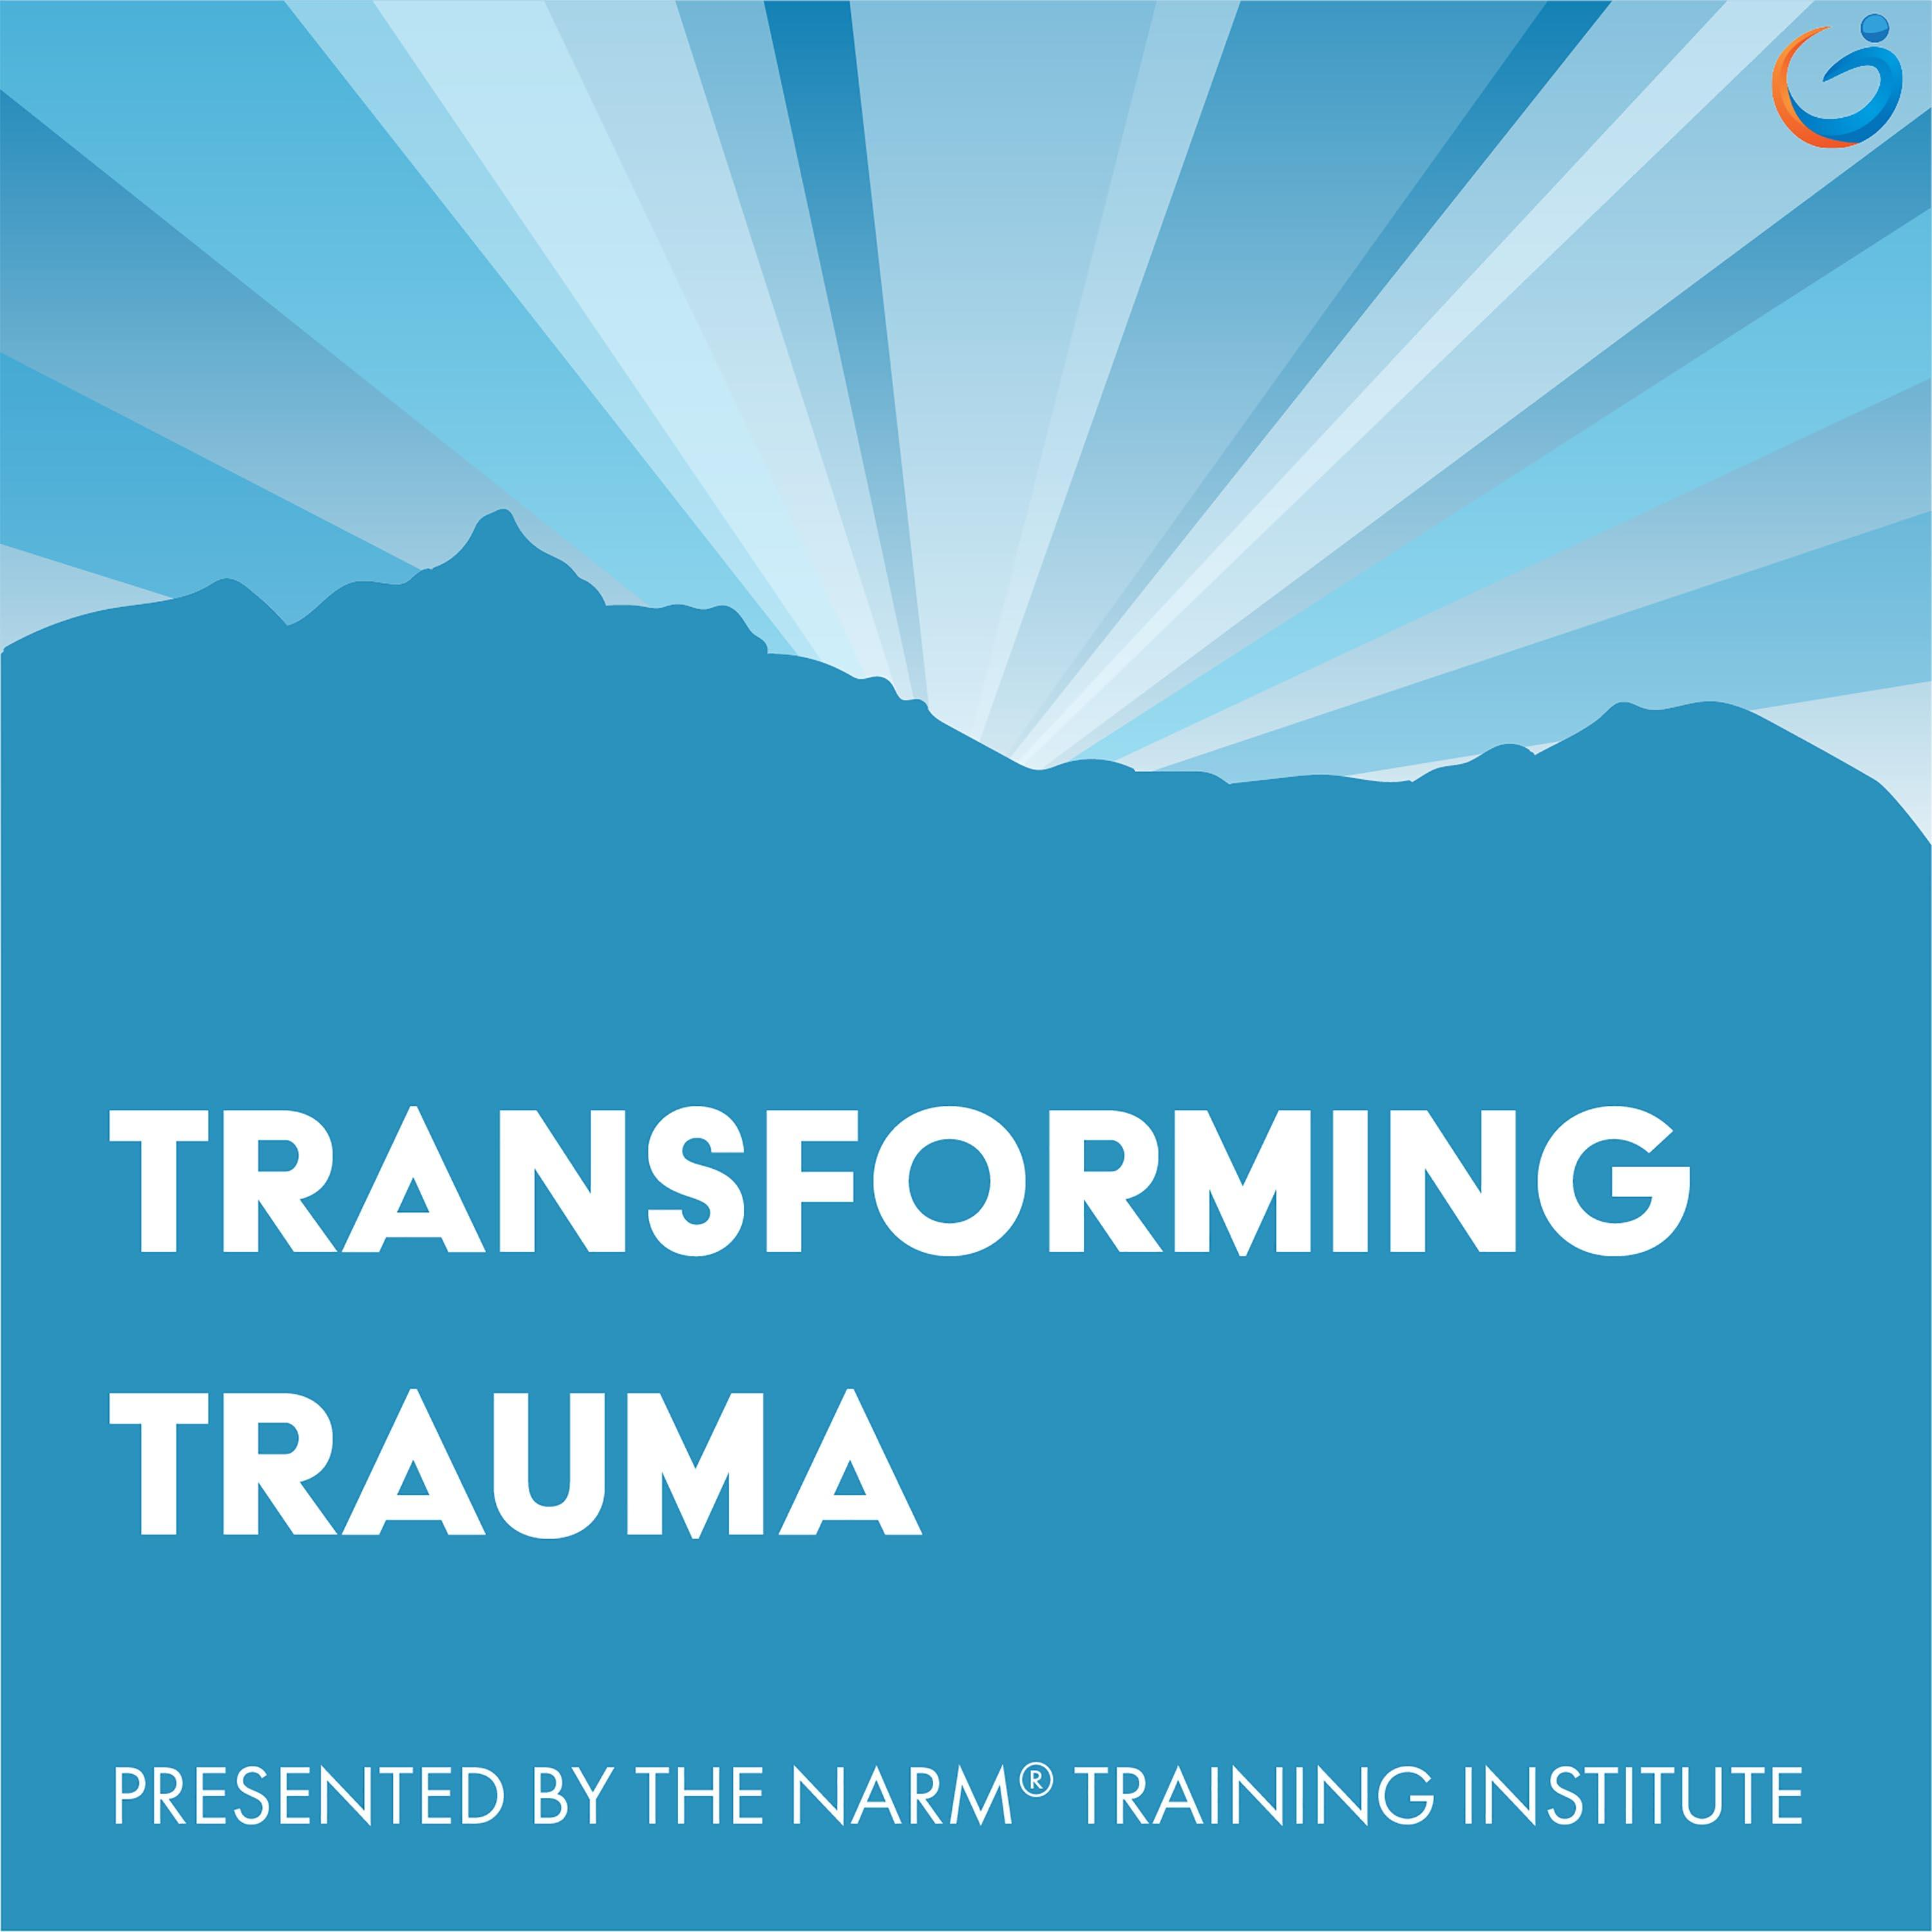 NARM Inner Circle Presents: Working in the Present Moment with Dr. Laurence Heller and Brad Kammer